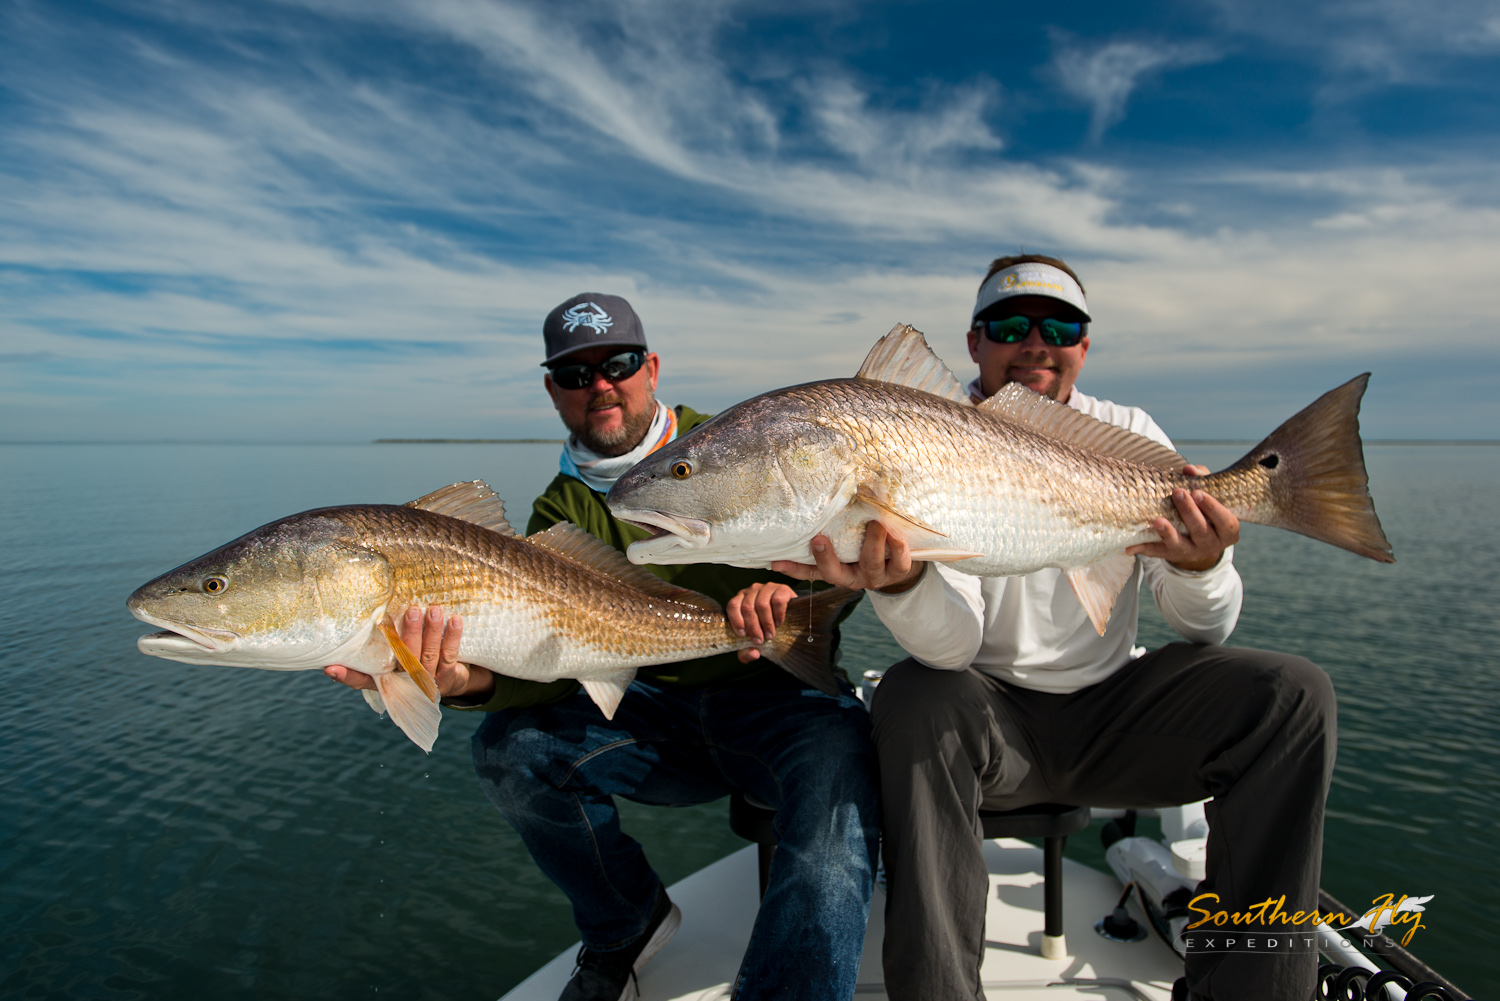 2018-11-19-21_SouthernFlyExpeditions_NewOrleans_JuddJacksonMikeO'Dell-3.jpg